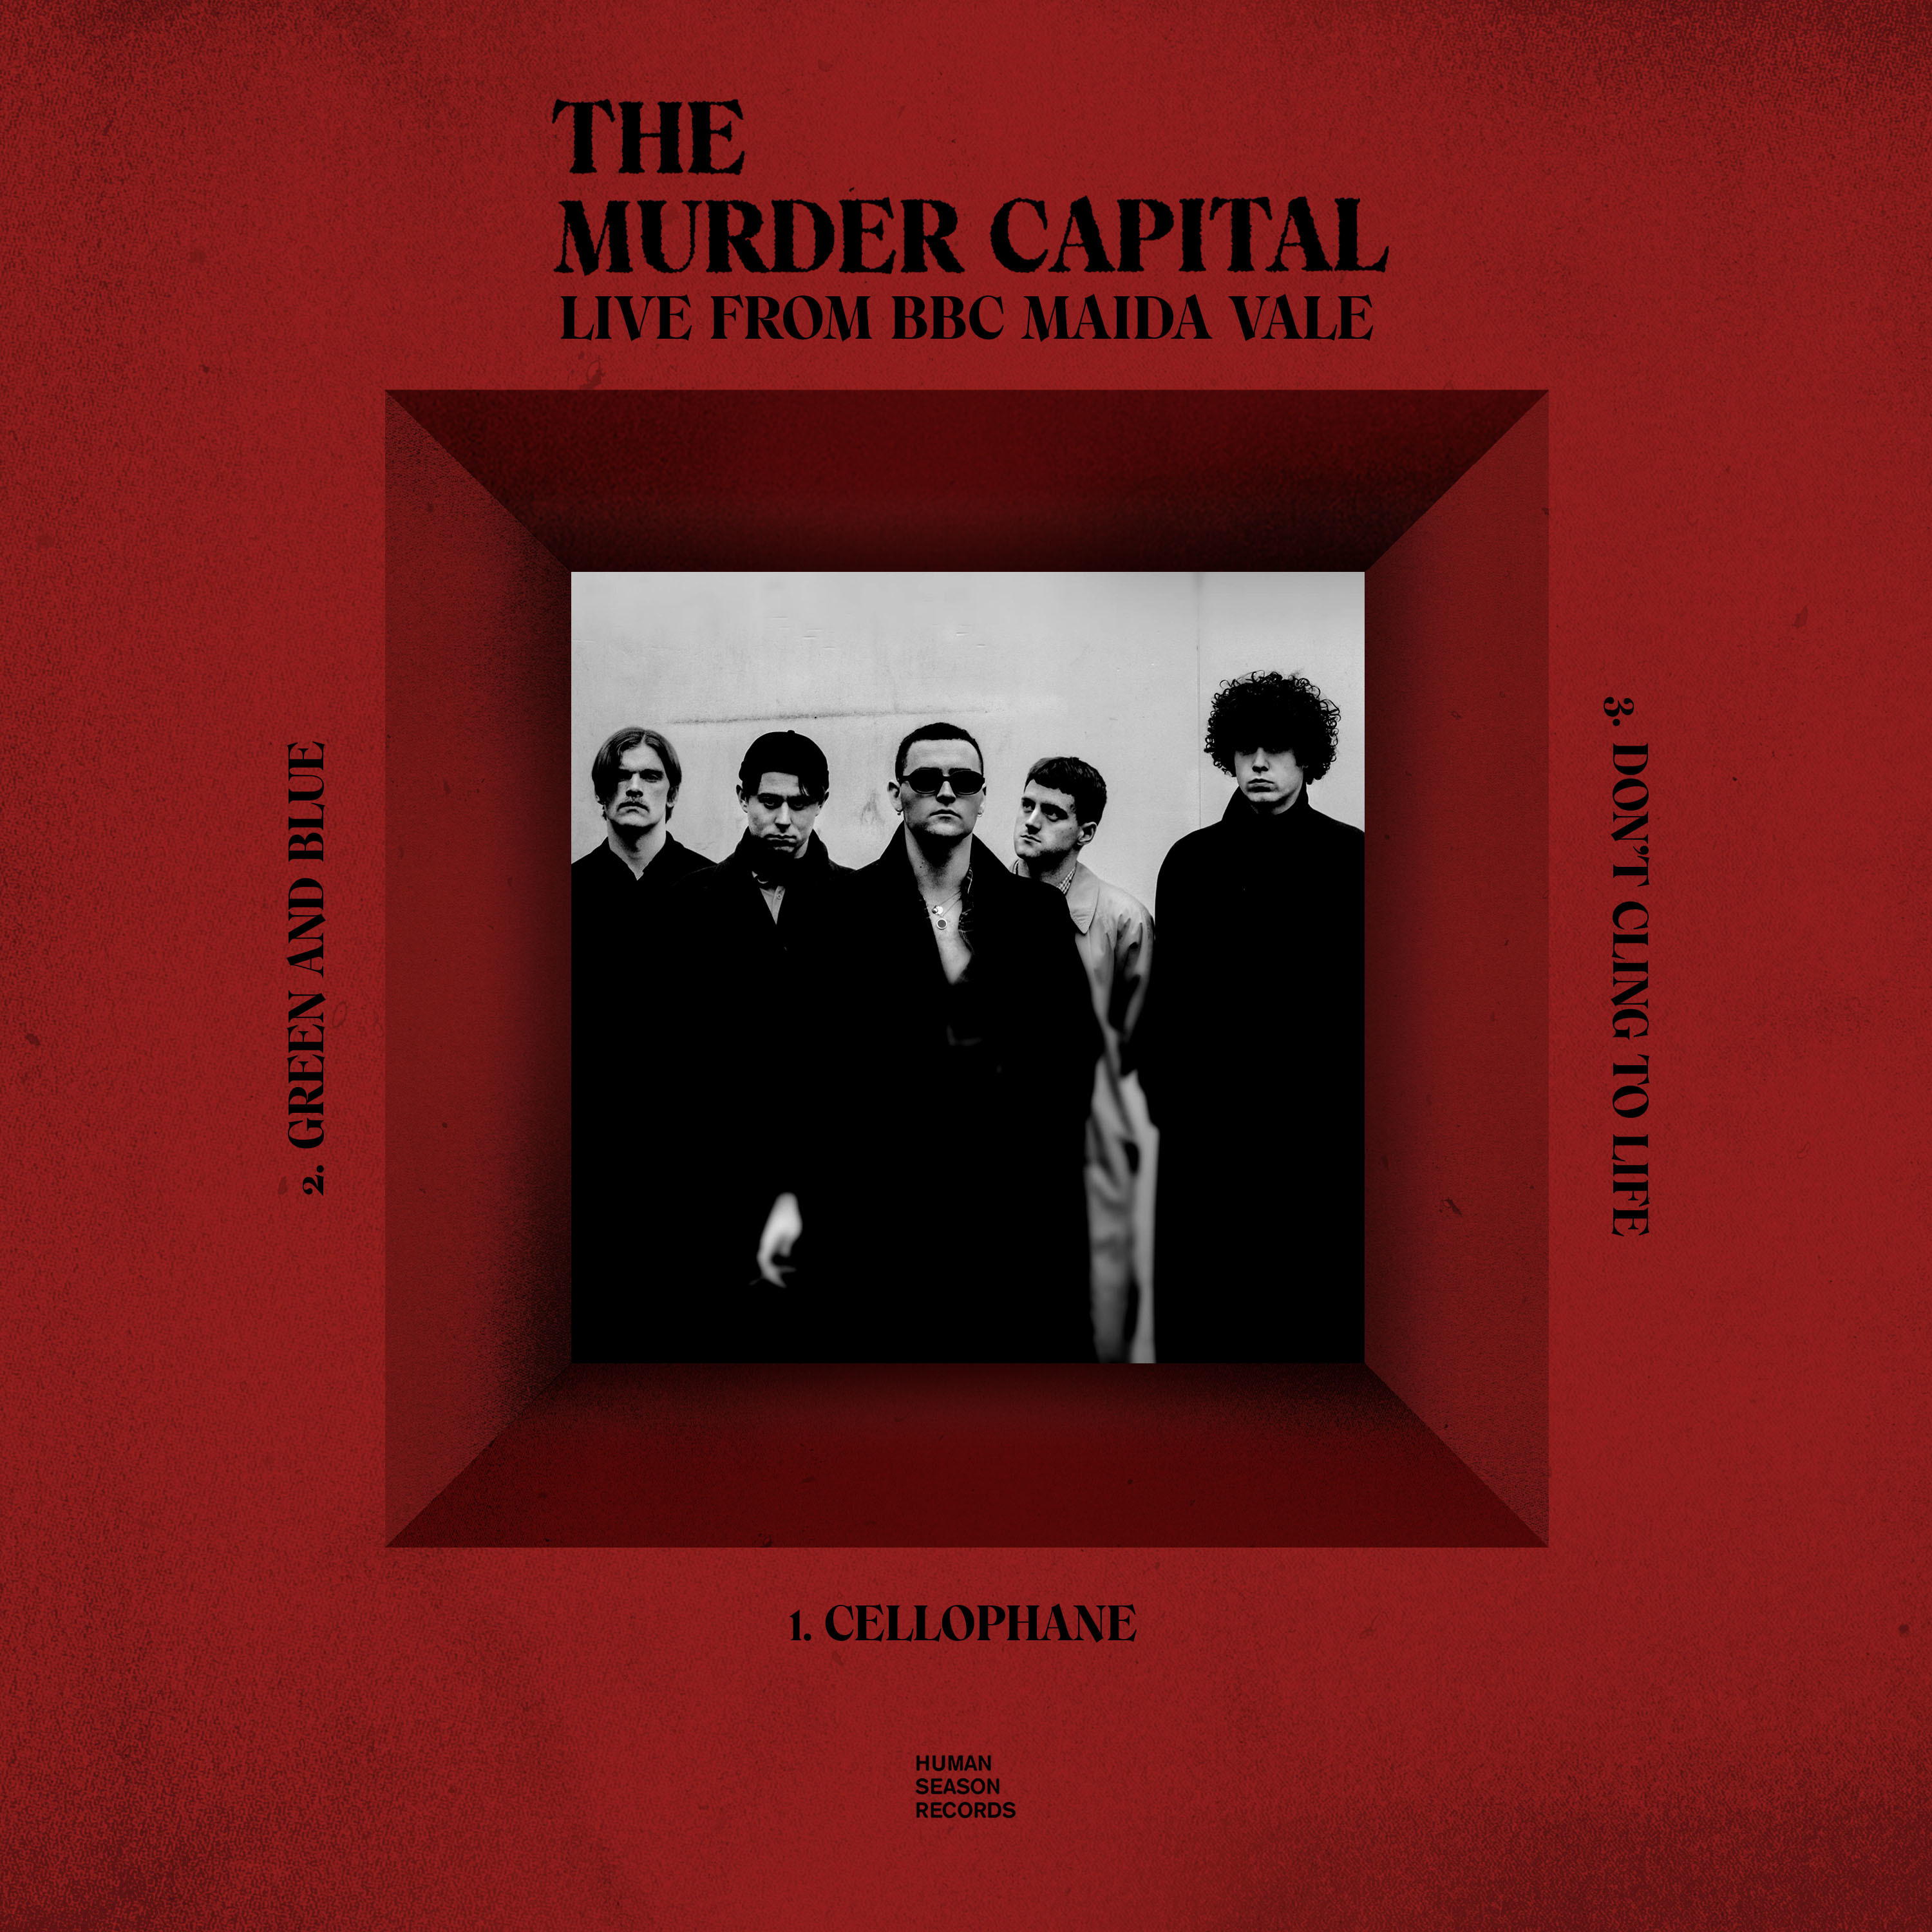 The Murder Capital - Live From BBC Maida Vale EP